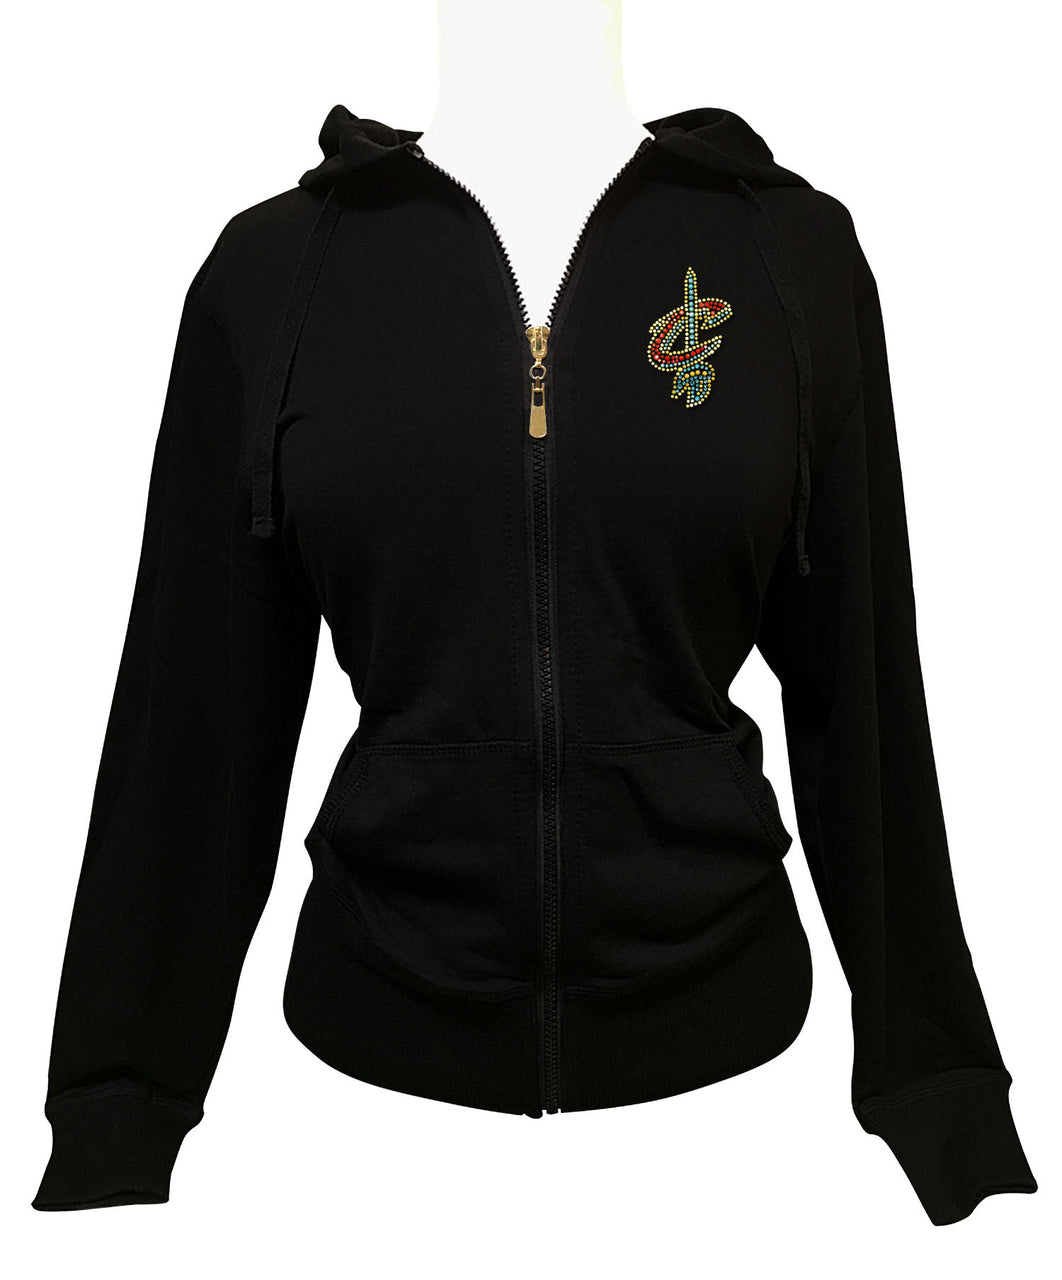 Official Cleveland Cavs Rhinestone Hoodie